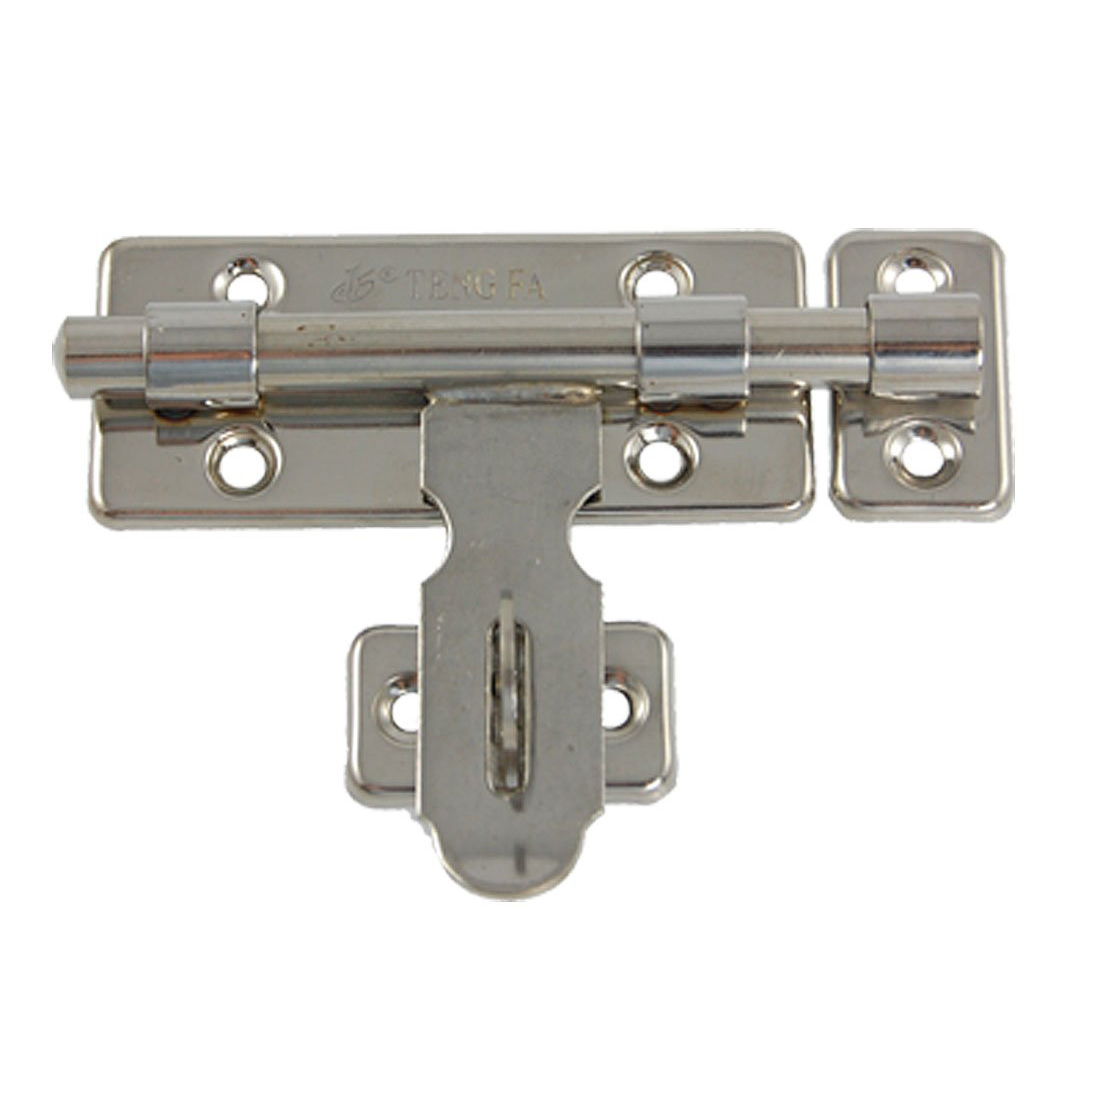 generic hardware door lock barrel bolt latch padlock clasp setchina